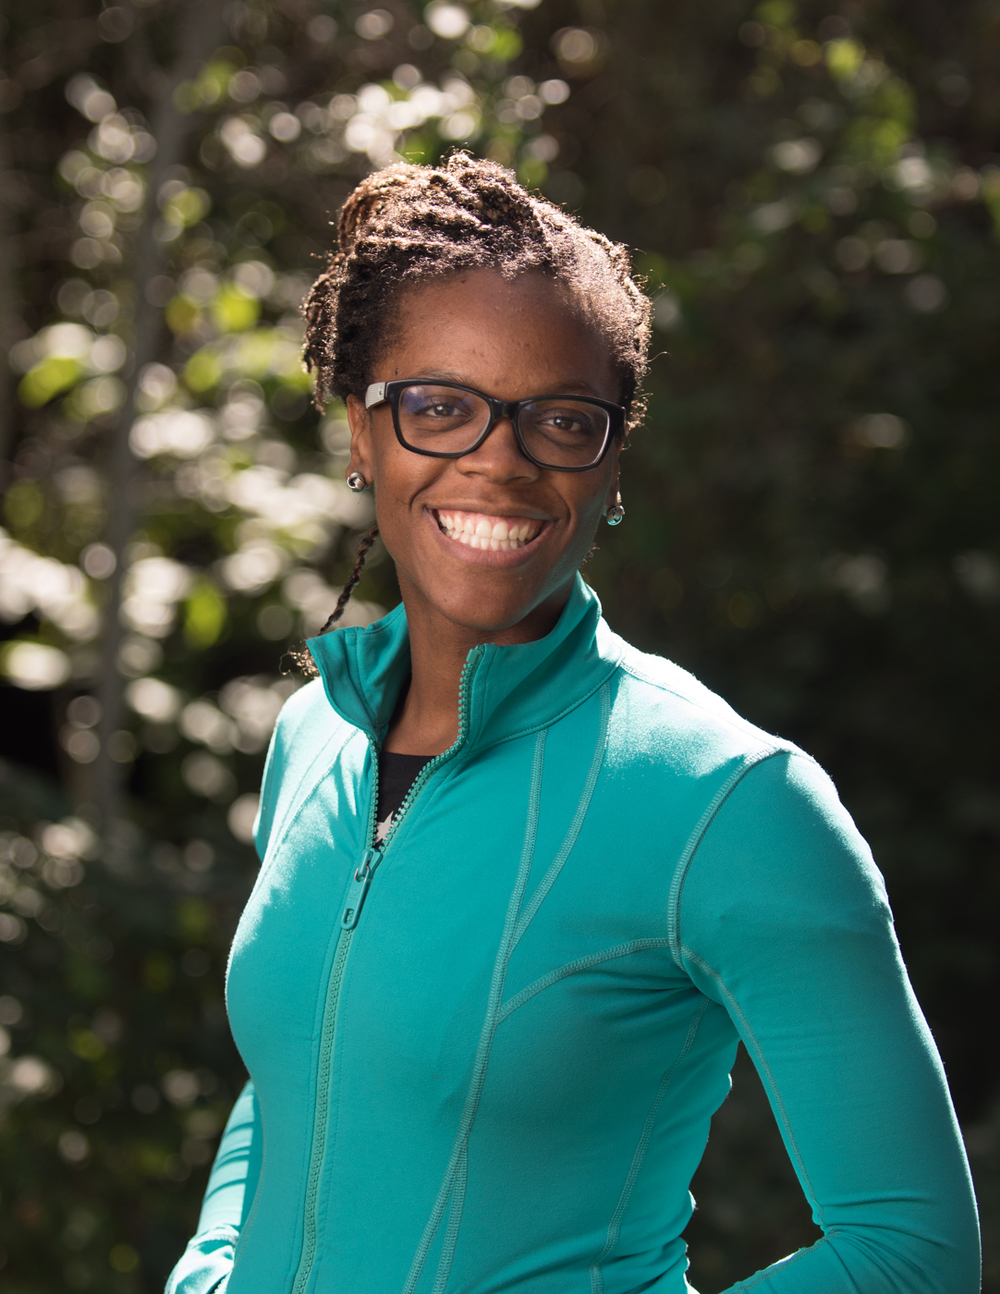 Alicia Haskins<span>Rainier Health & Fitness<span>Director</span>